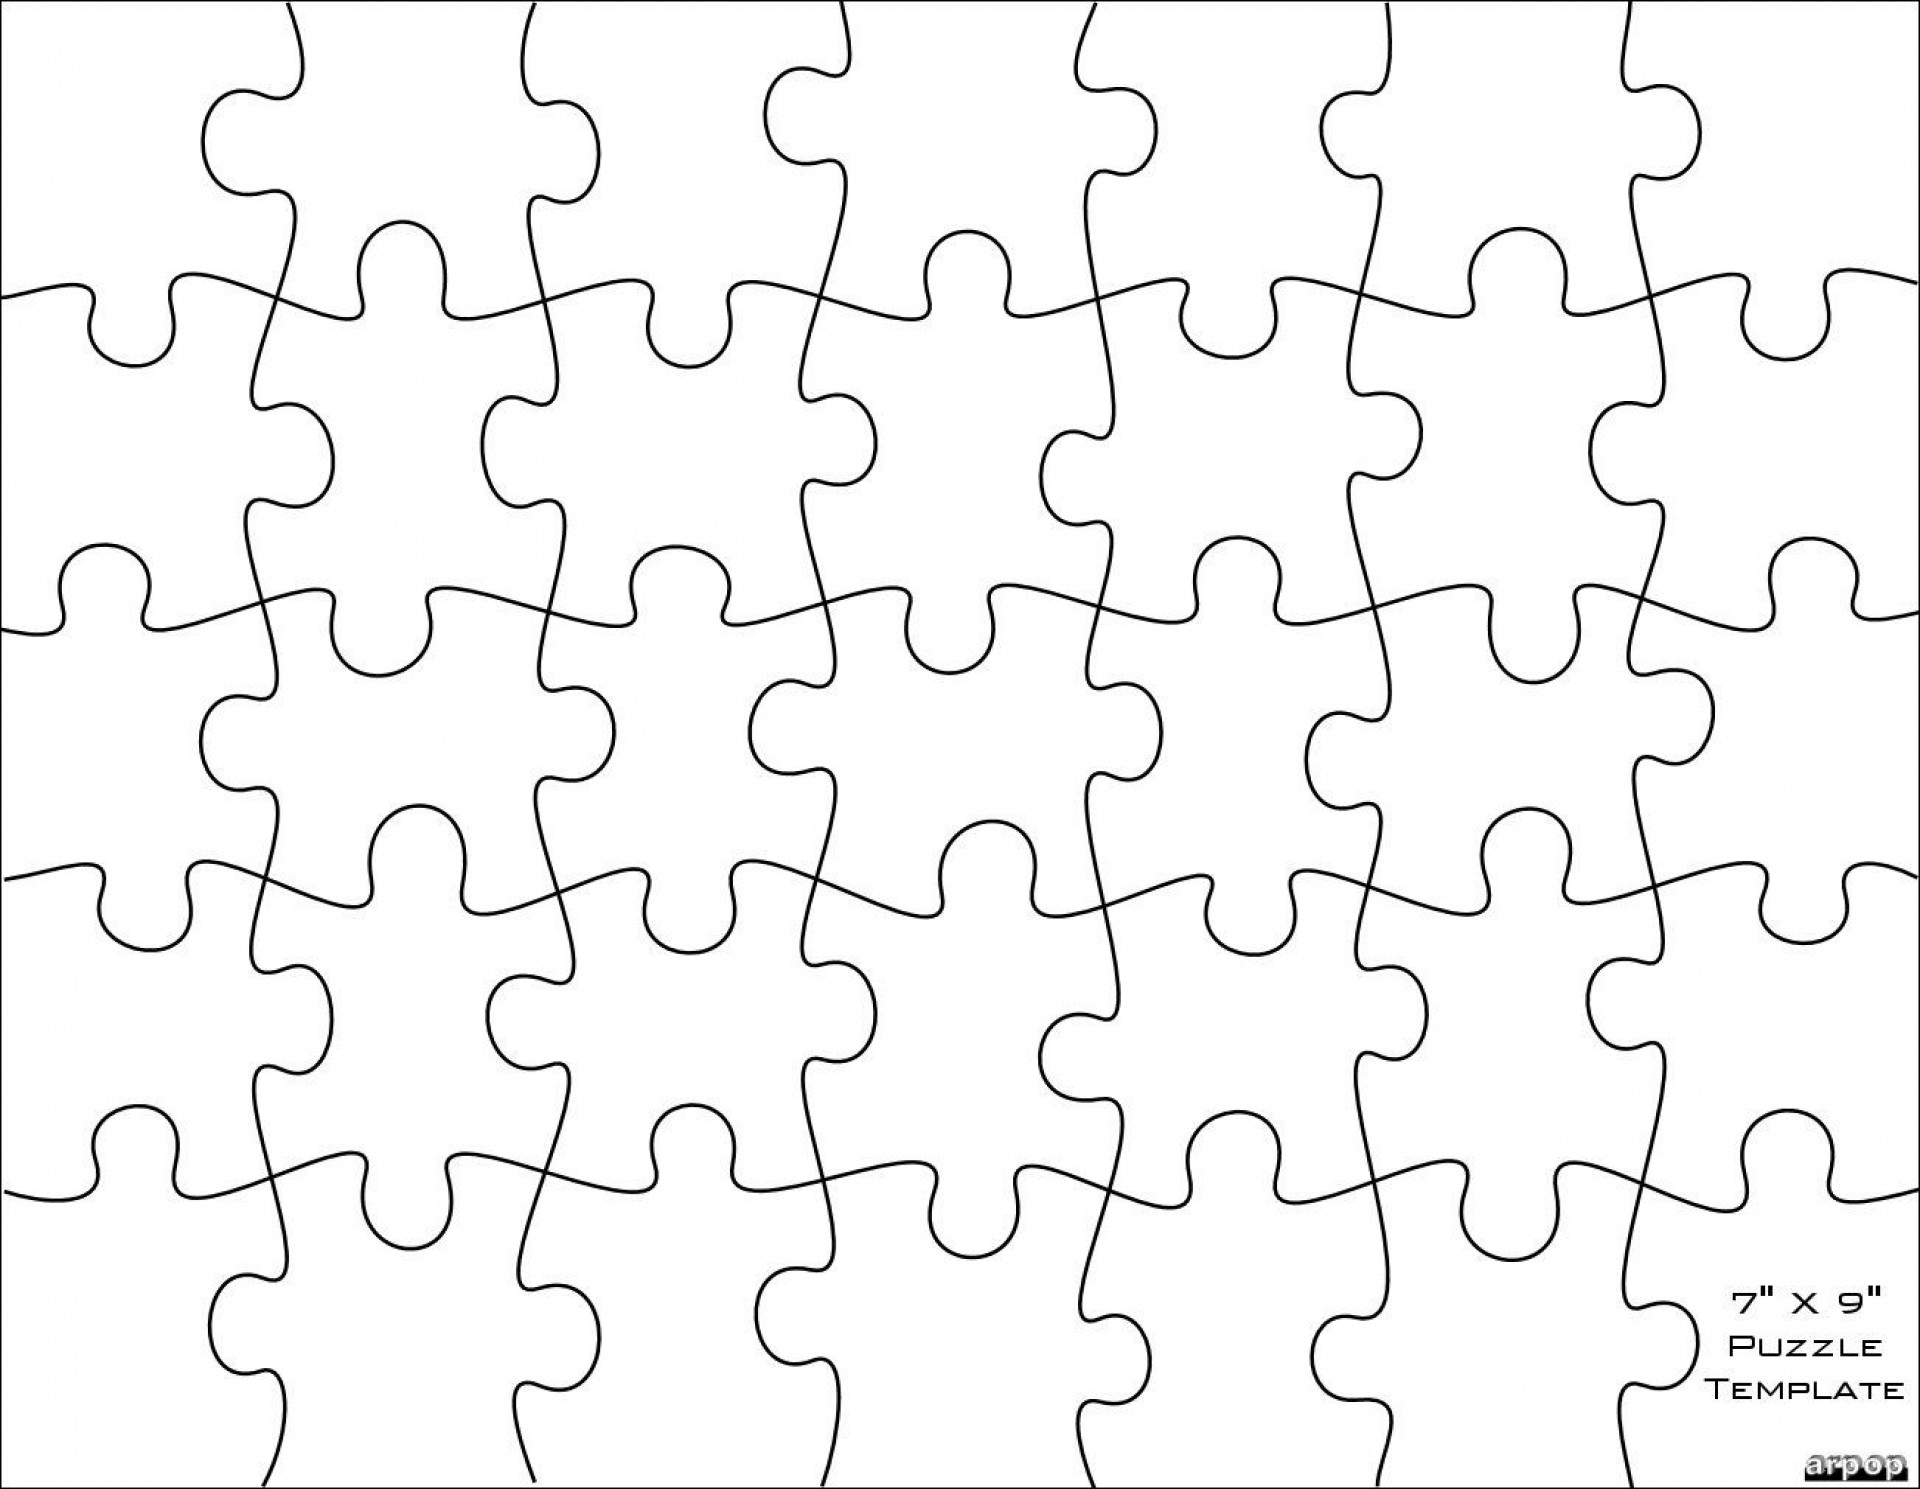 006 Jigsaw Puzzle Blank Template Twenty Pieces Simple Jig Saw - Printable Puzzle Blank